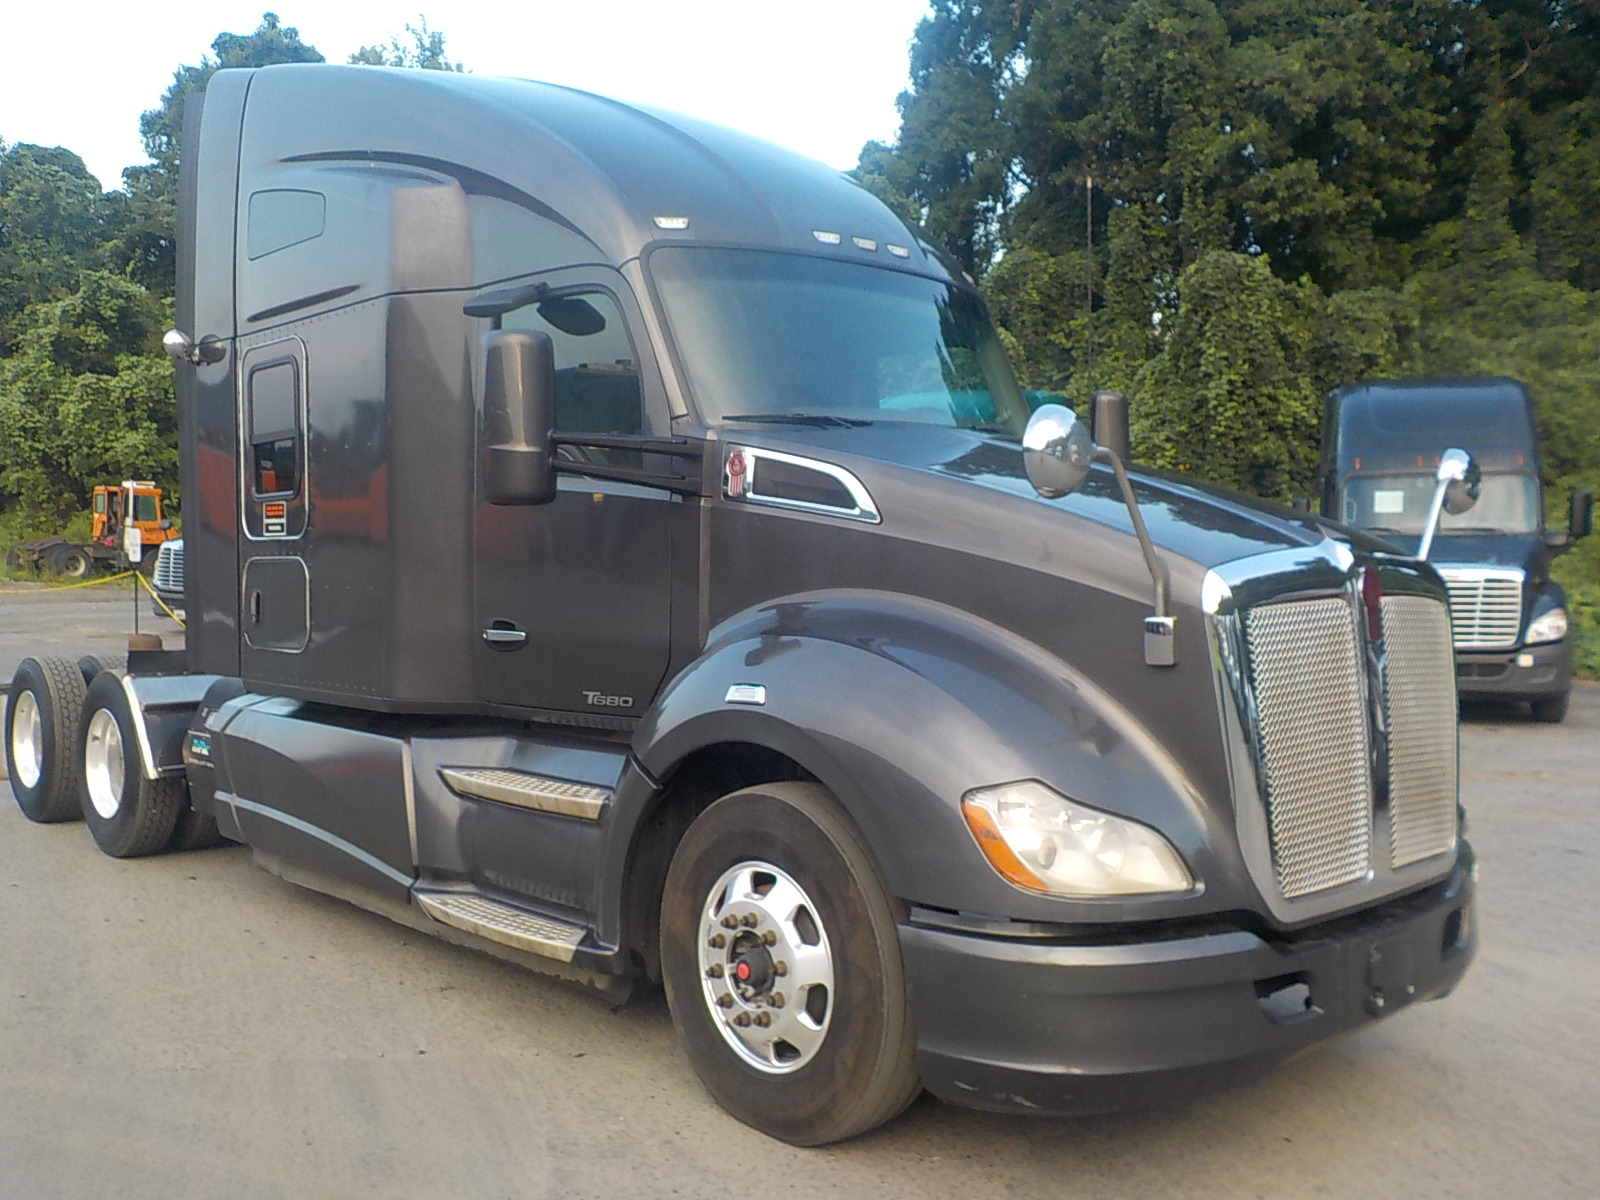 USED 2015 KENWORTH T680 SLEEPER TRUCK #130631